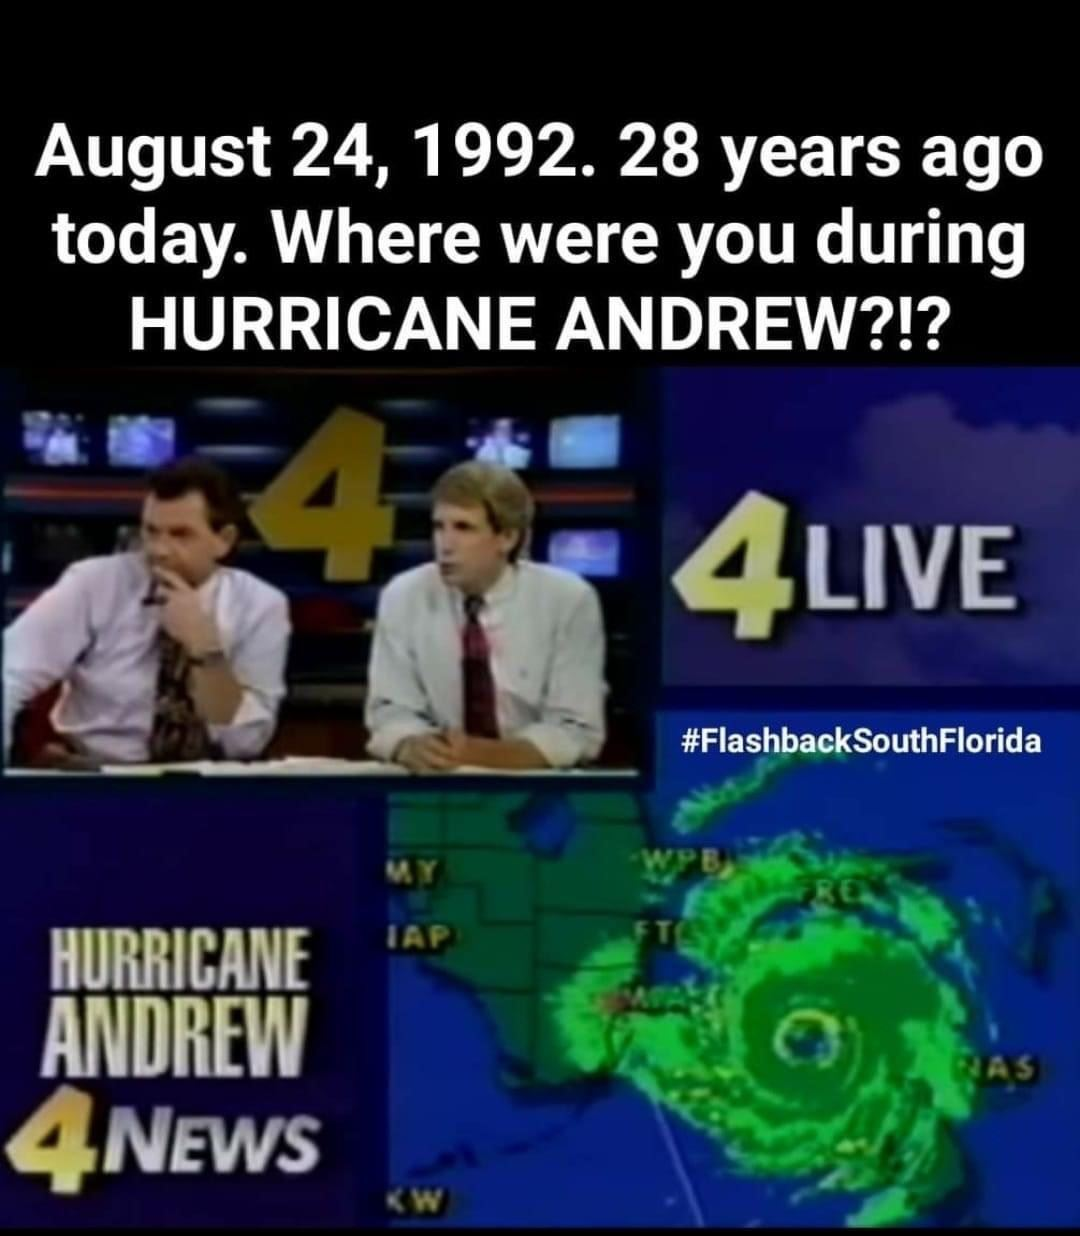 Where were you during Hurricane Andrew?